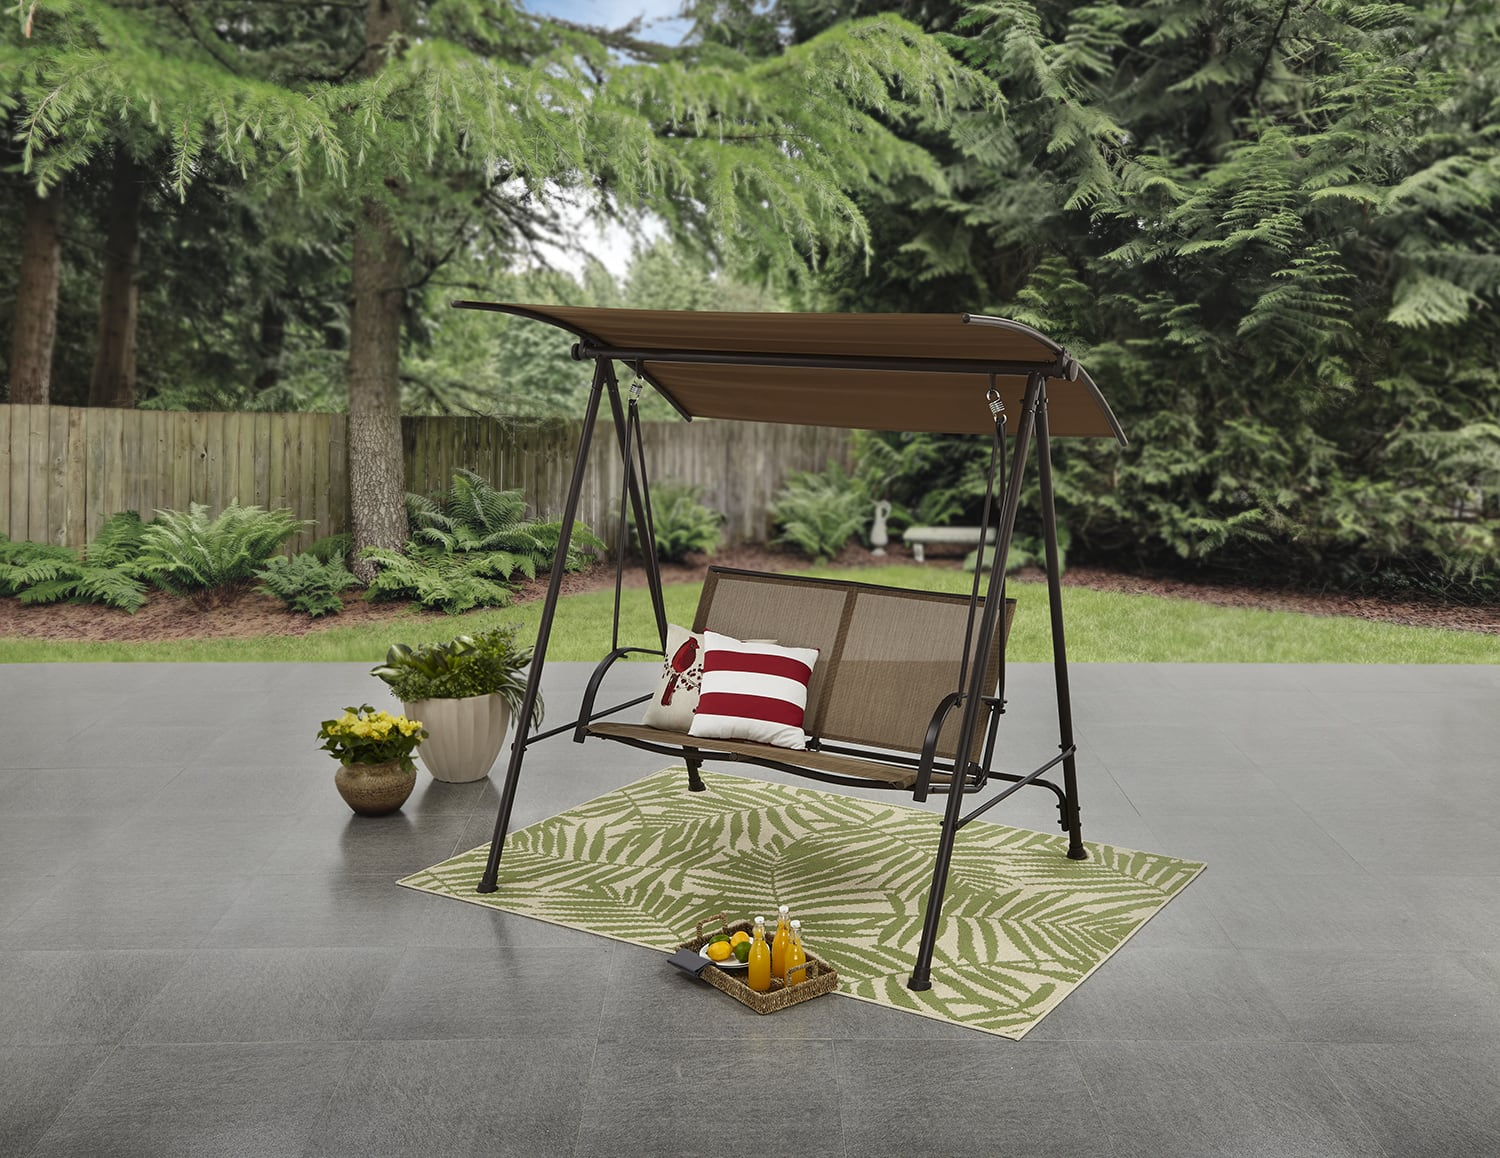 Wm Ymmv Mainstays Two Person Canopy Porch Swing 21 Slickdeals Net